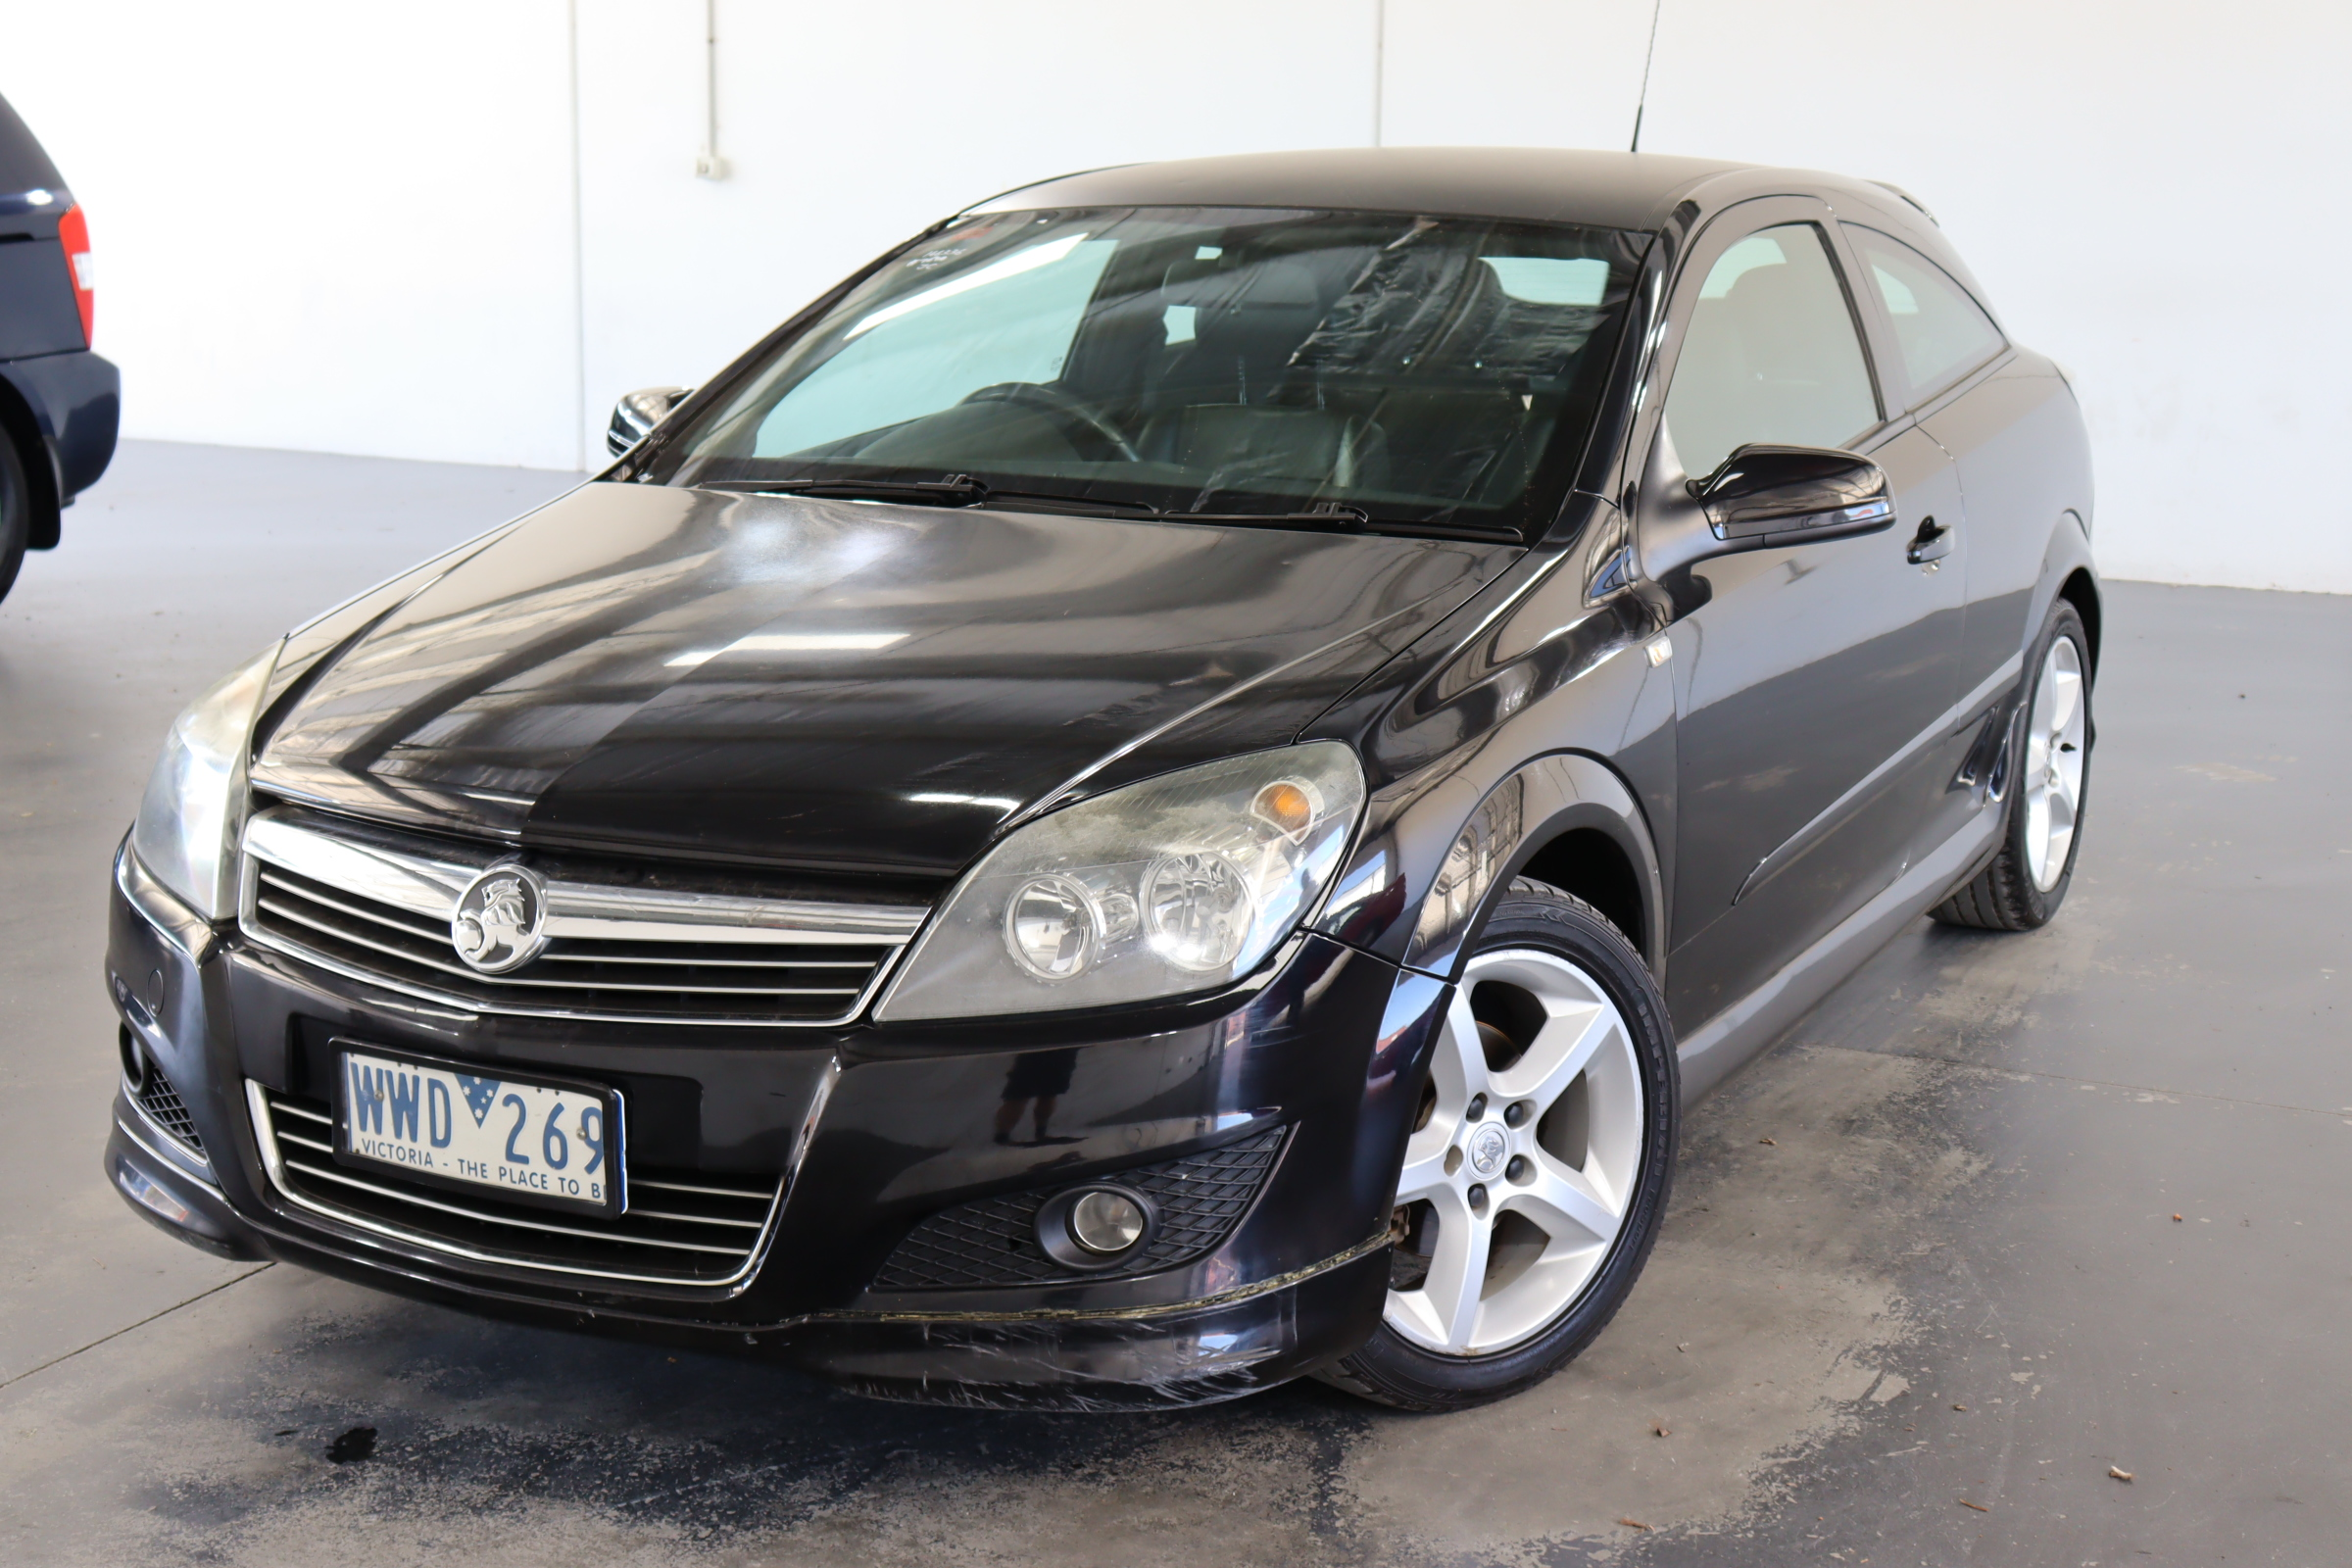 2009 Holden Astra SRi AH Manual Hatchback